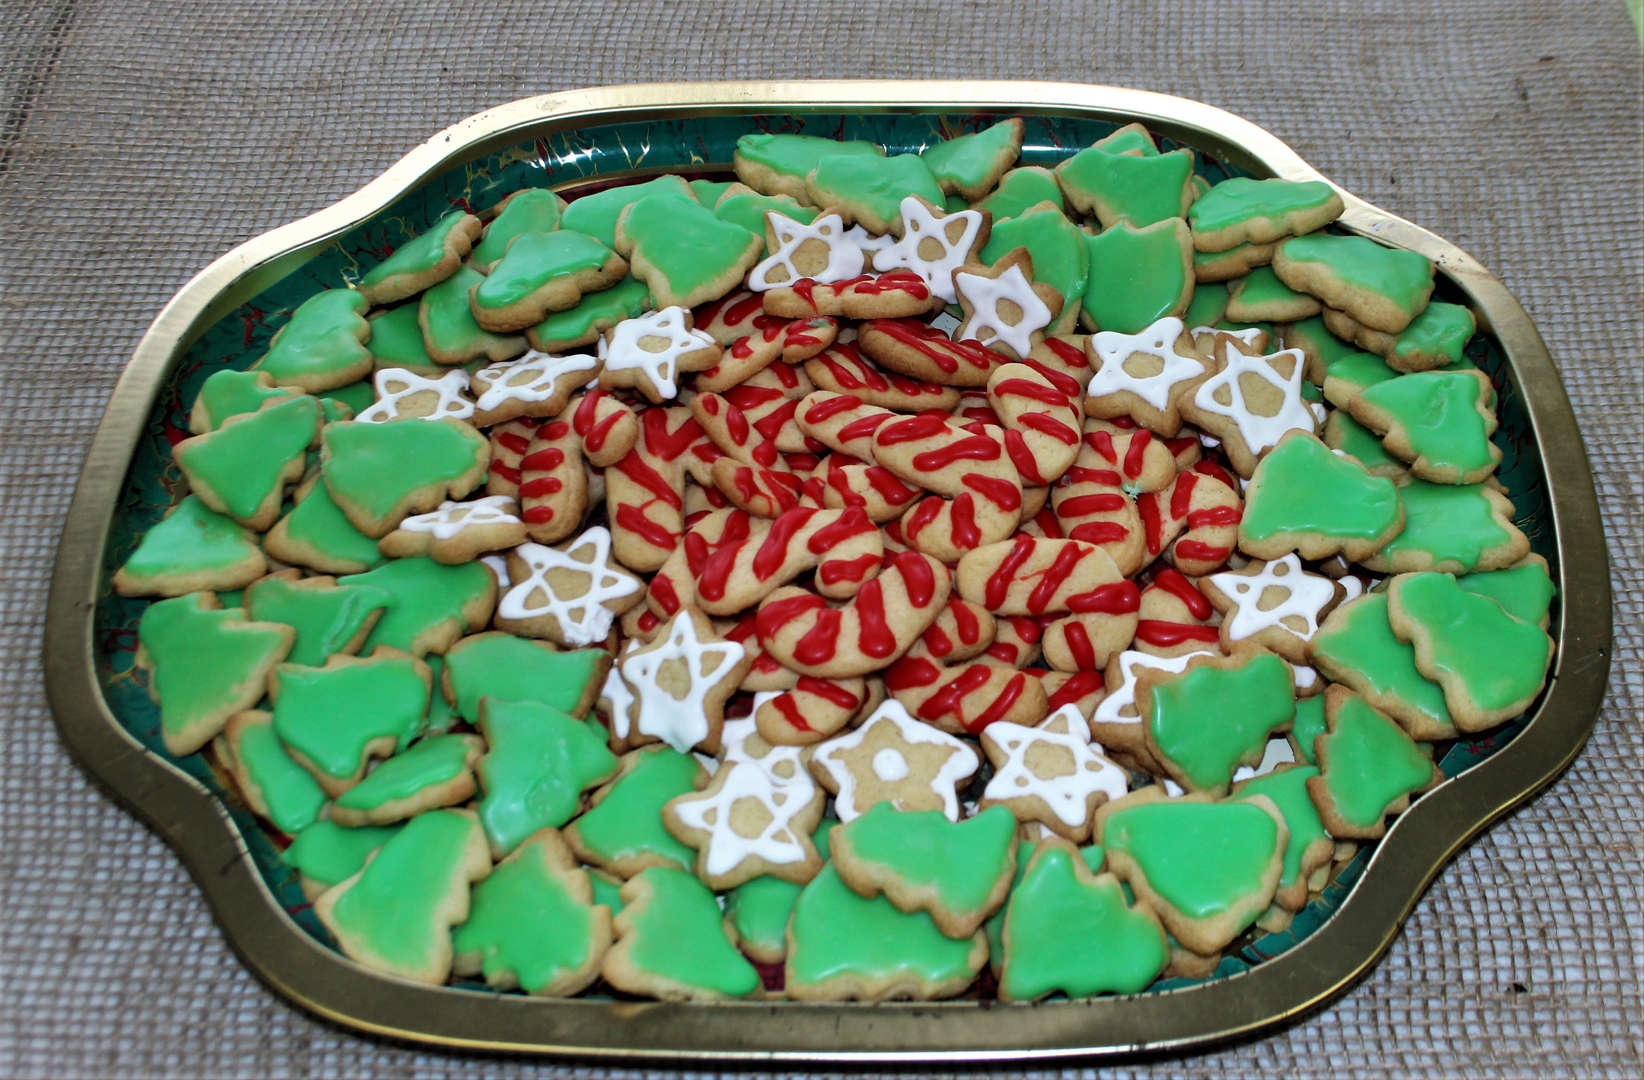 Photo of a platter of sugar cookies in the shape of stars, trees and candy canes.